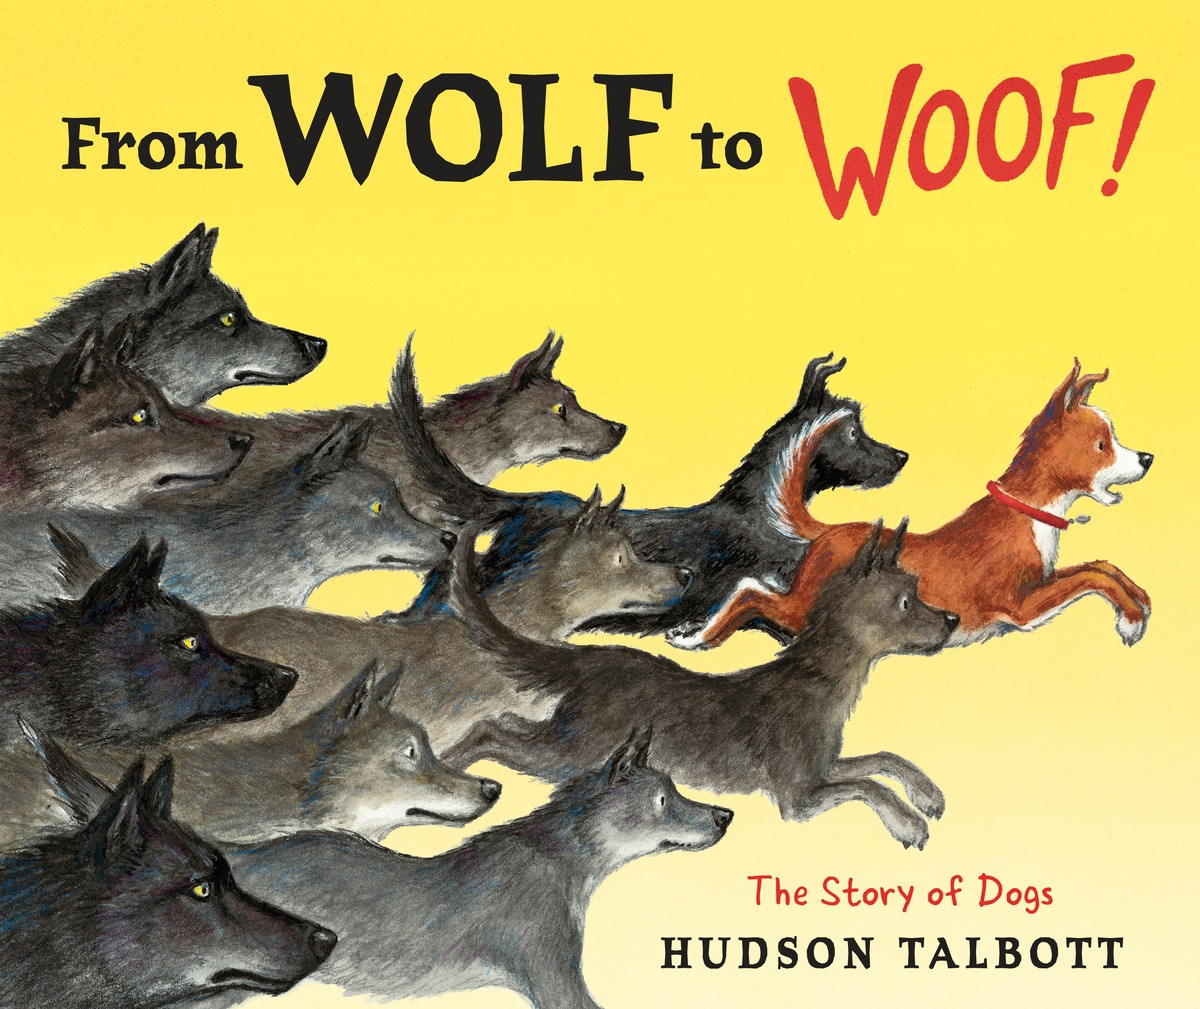 From Wolf to Woof!: The Story of Dogs